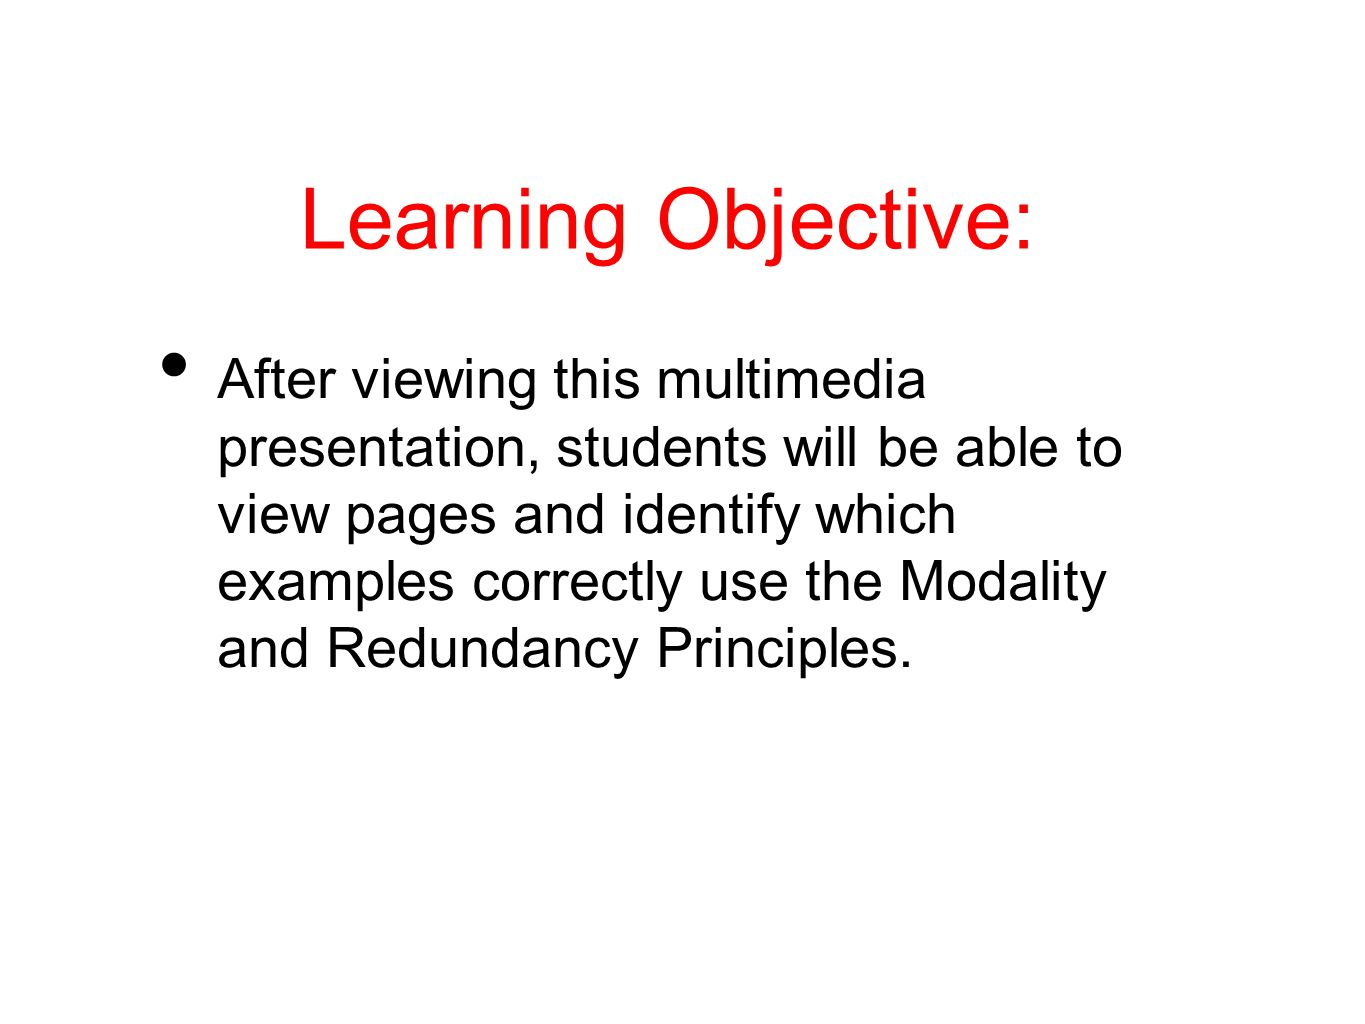 Example 3 is a good representation of use of the Modality and Redundancy principles.